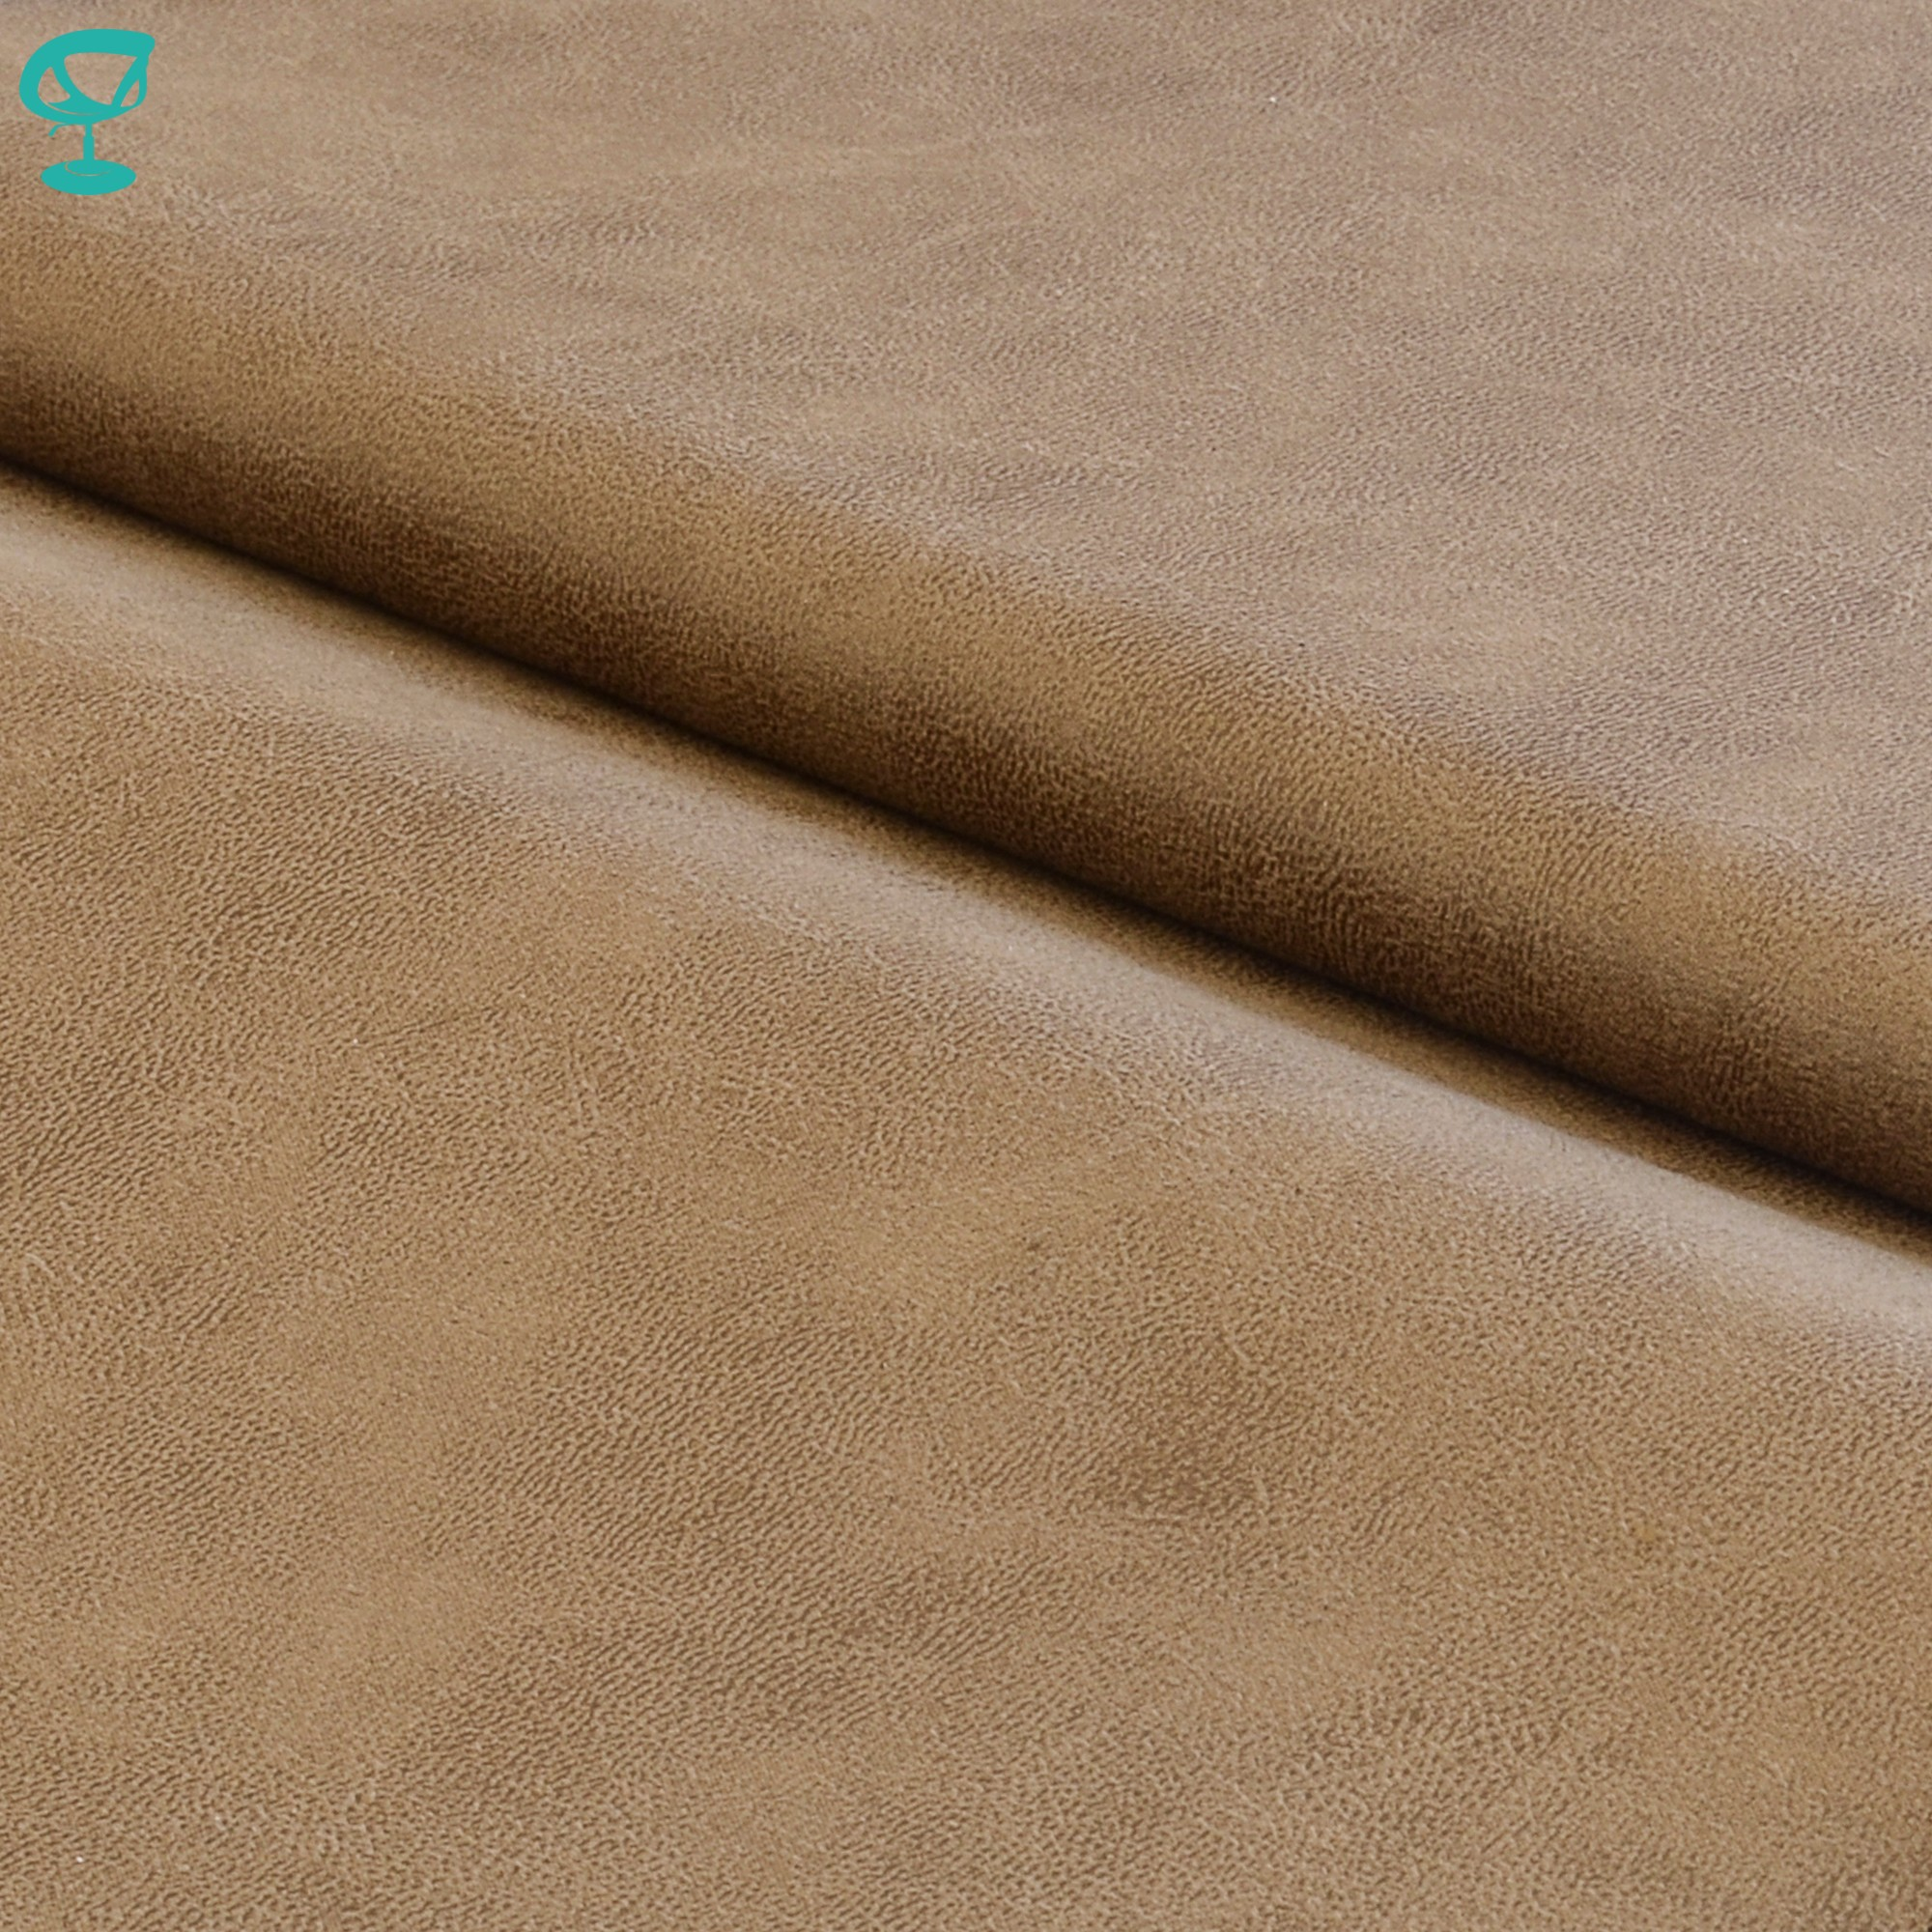 95651 Barneo PK970-6 Fabric Furniture Nubuck Polyester обивочный Material For мебельного Production Necking Chairs Sofas